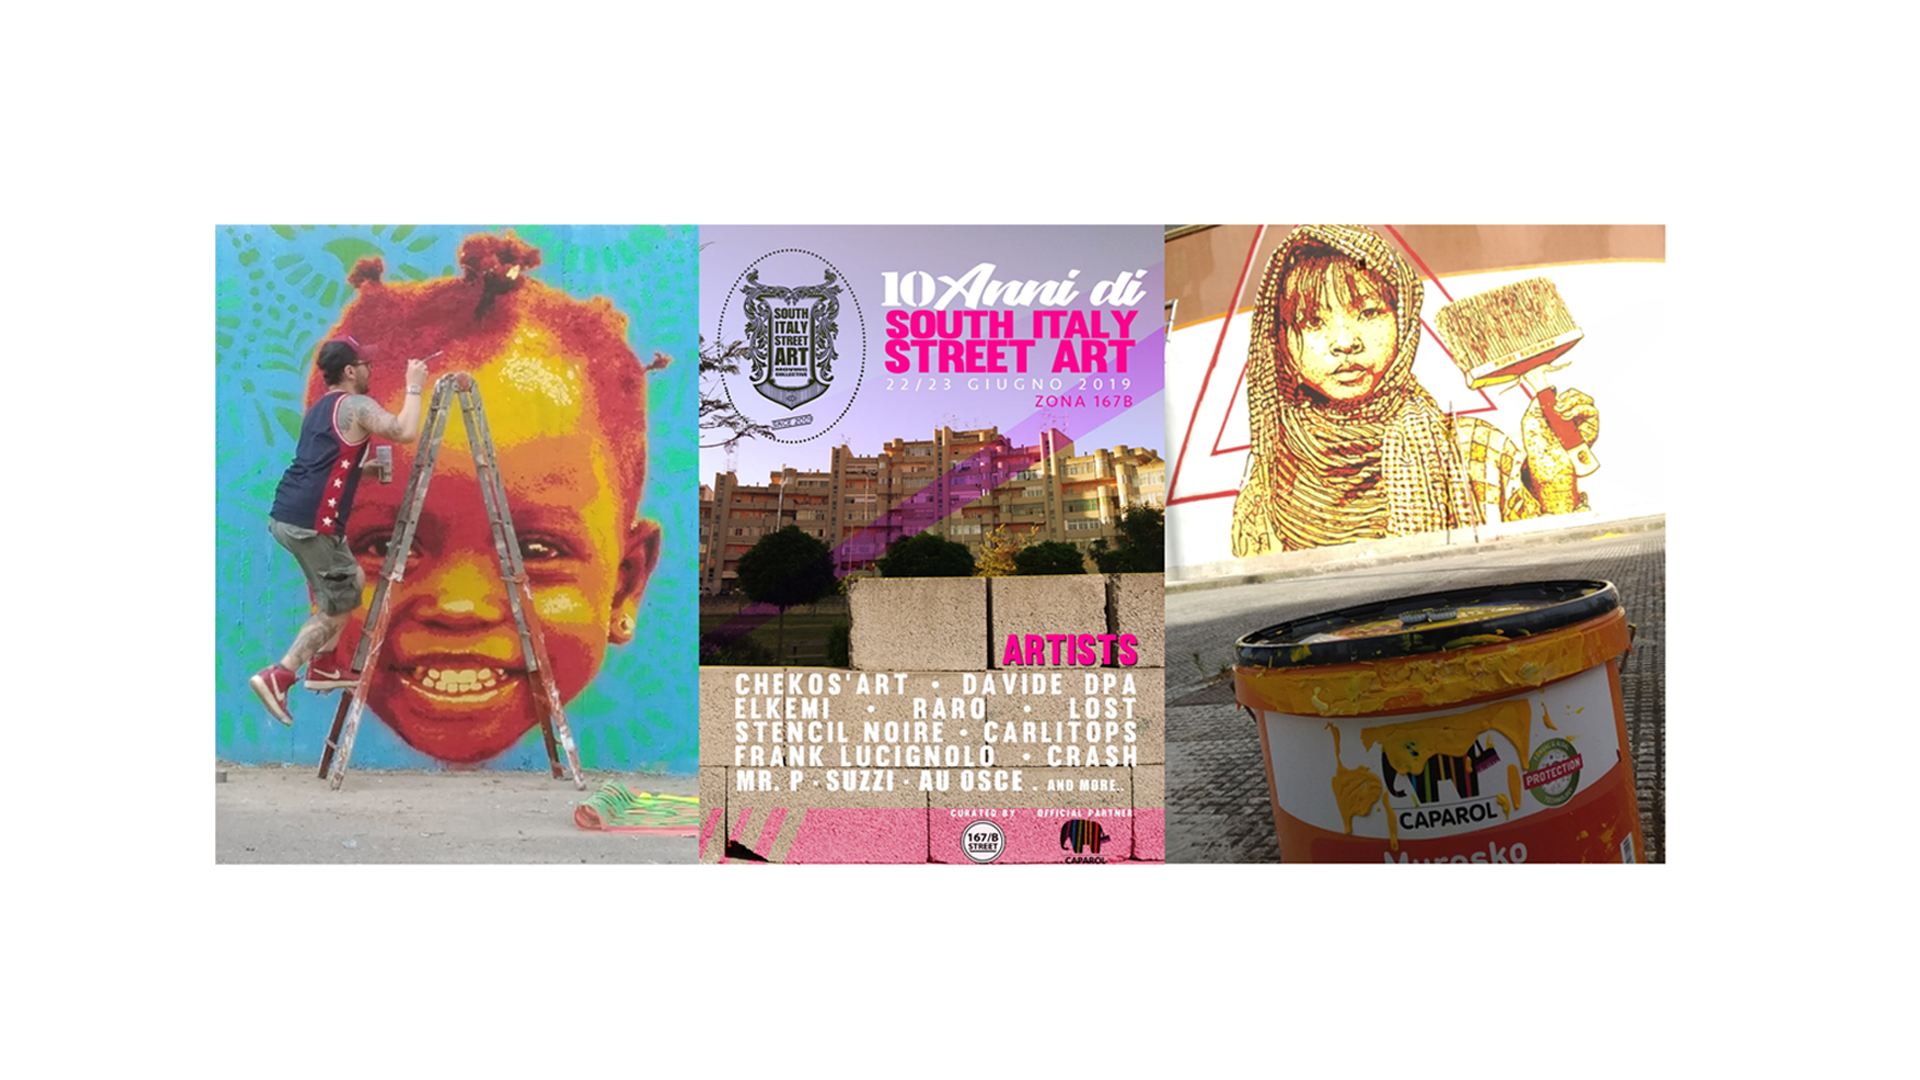 10 Anni di South Italy Street Art a Lecce